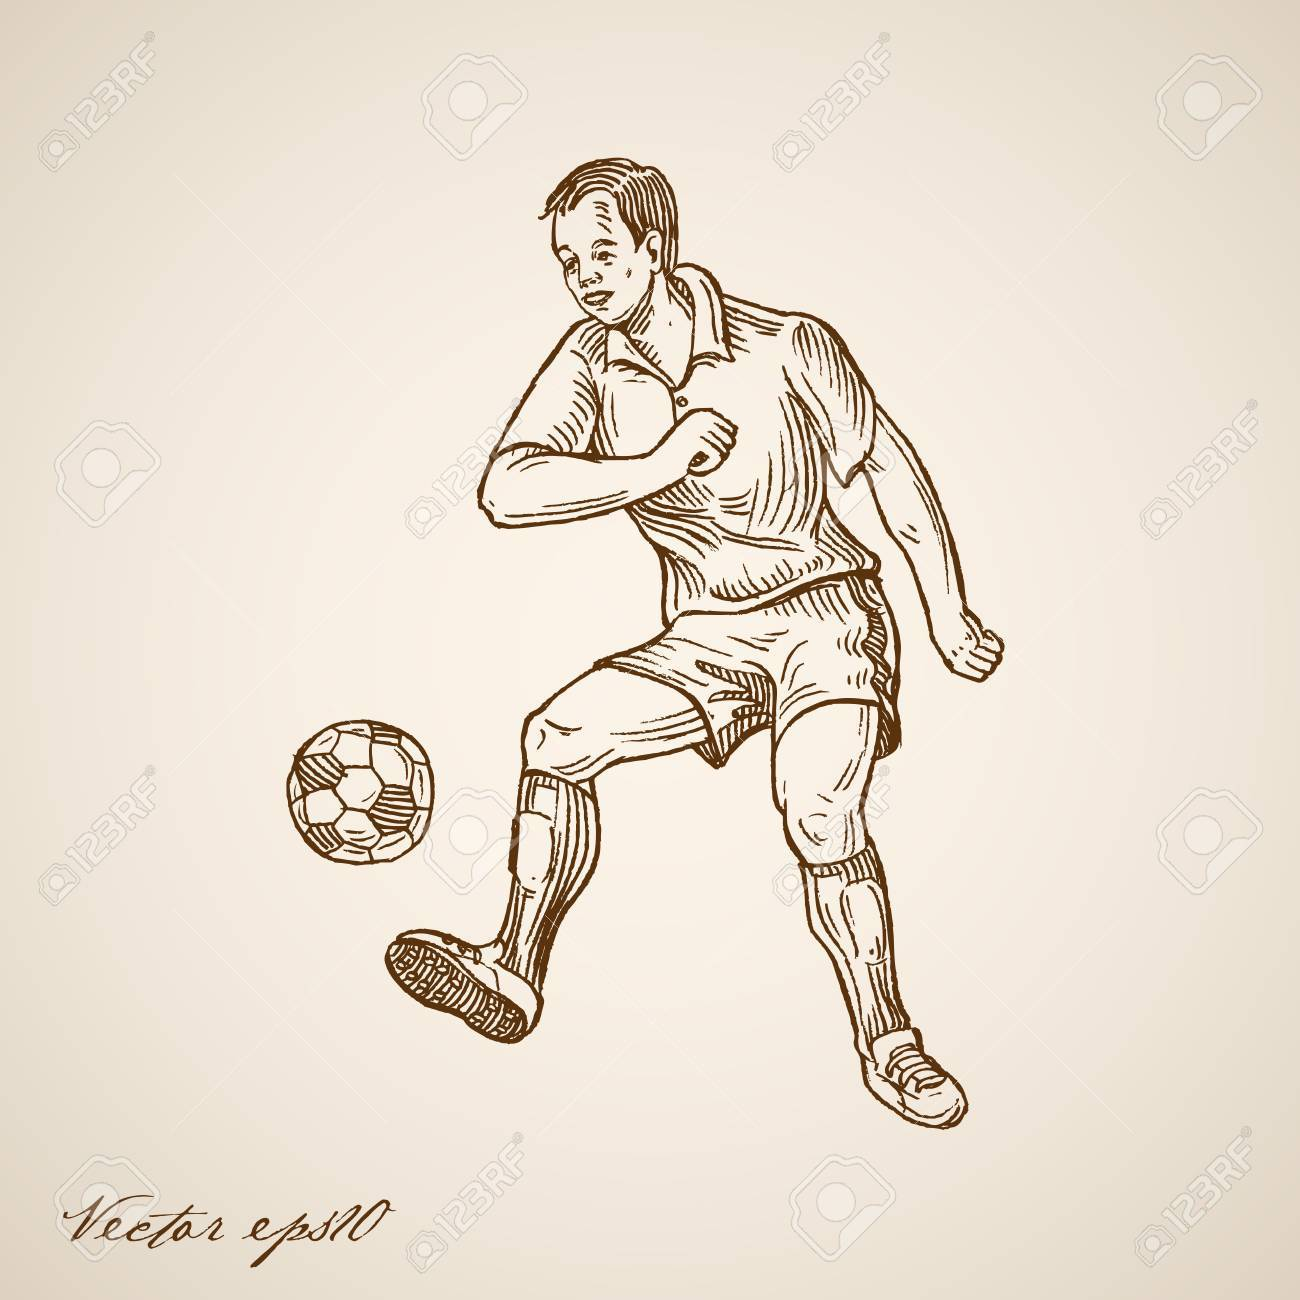 Engraving vintage hand drawn football soccer offensive forward player doodle collage stock vector